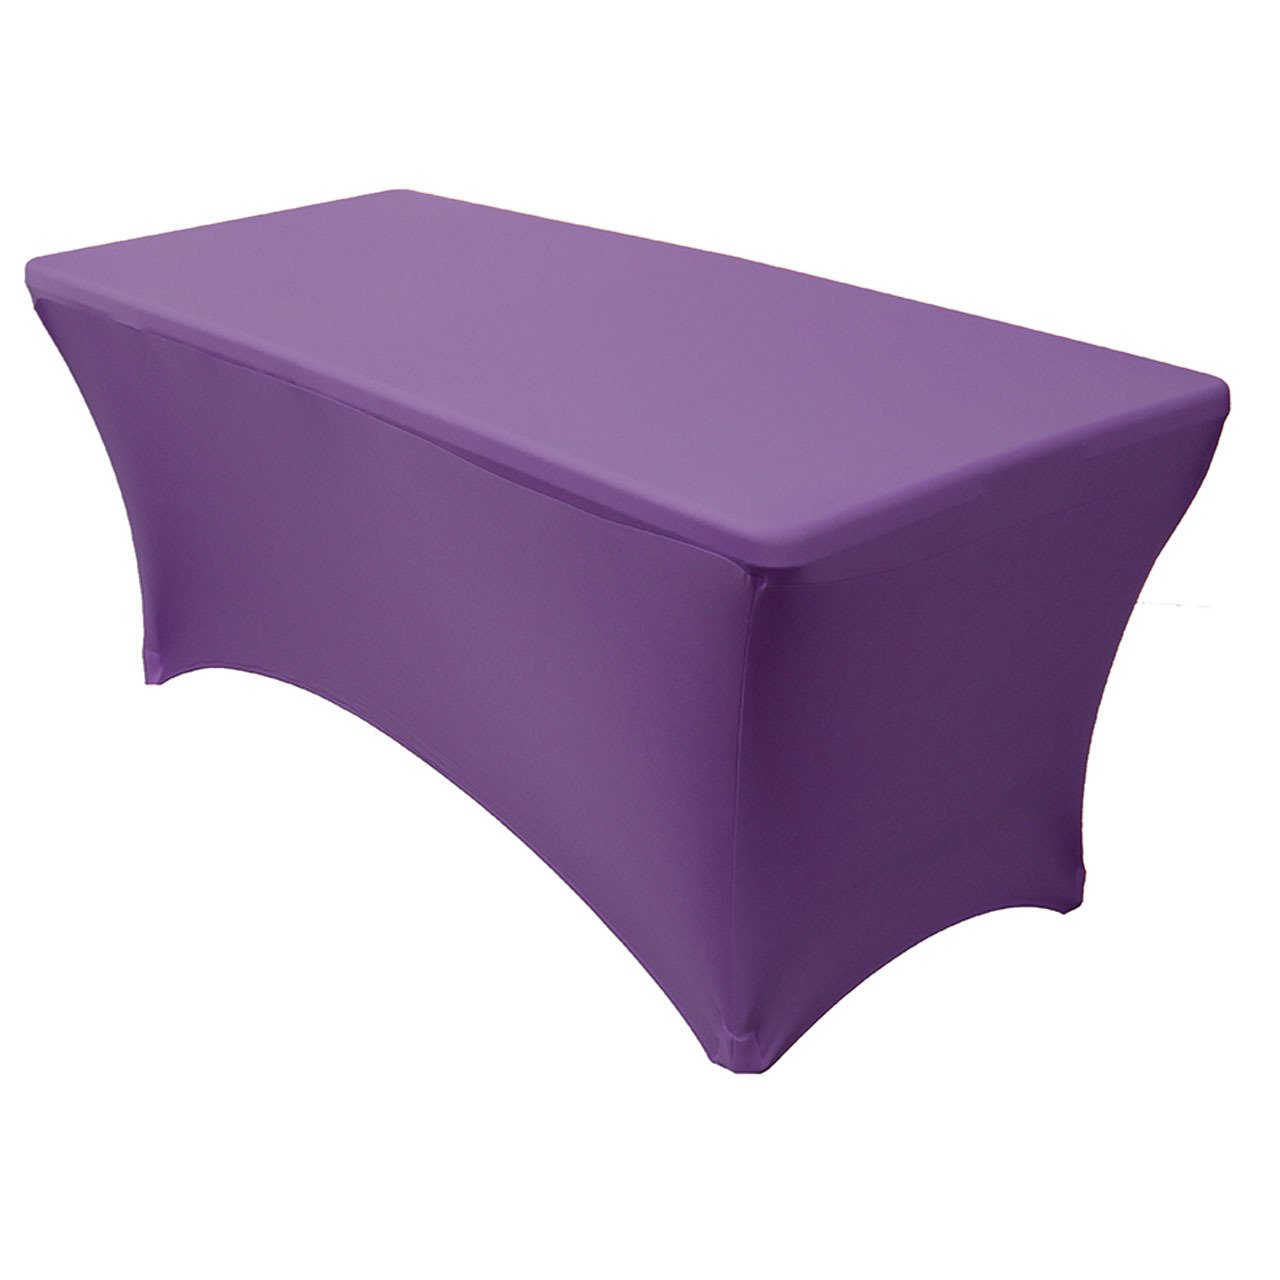 Your Chair Covers - Rectangular Fitted Stretch Spandex Table Cover, Purple, 8' L